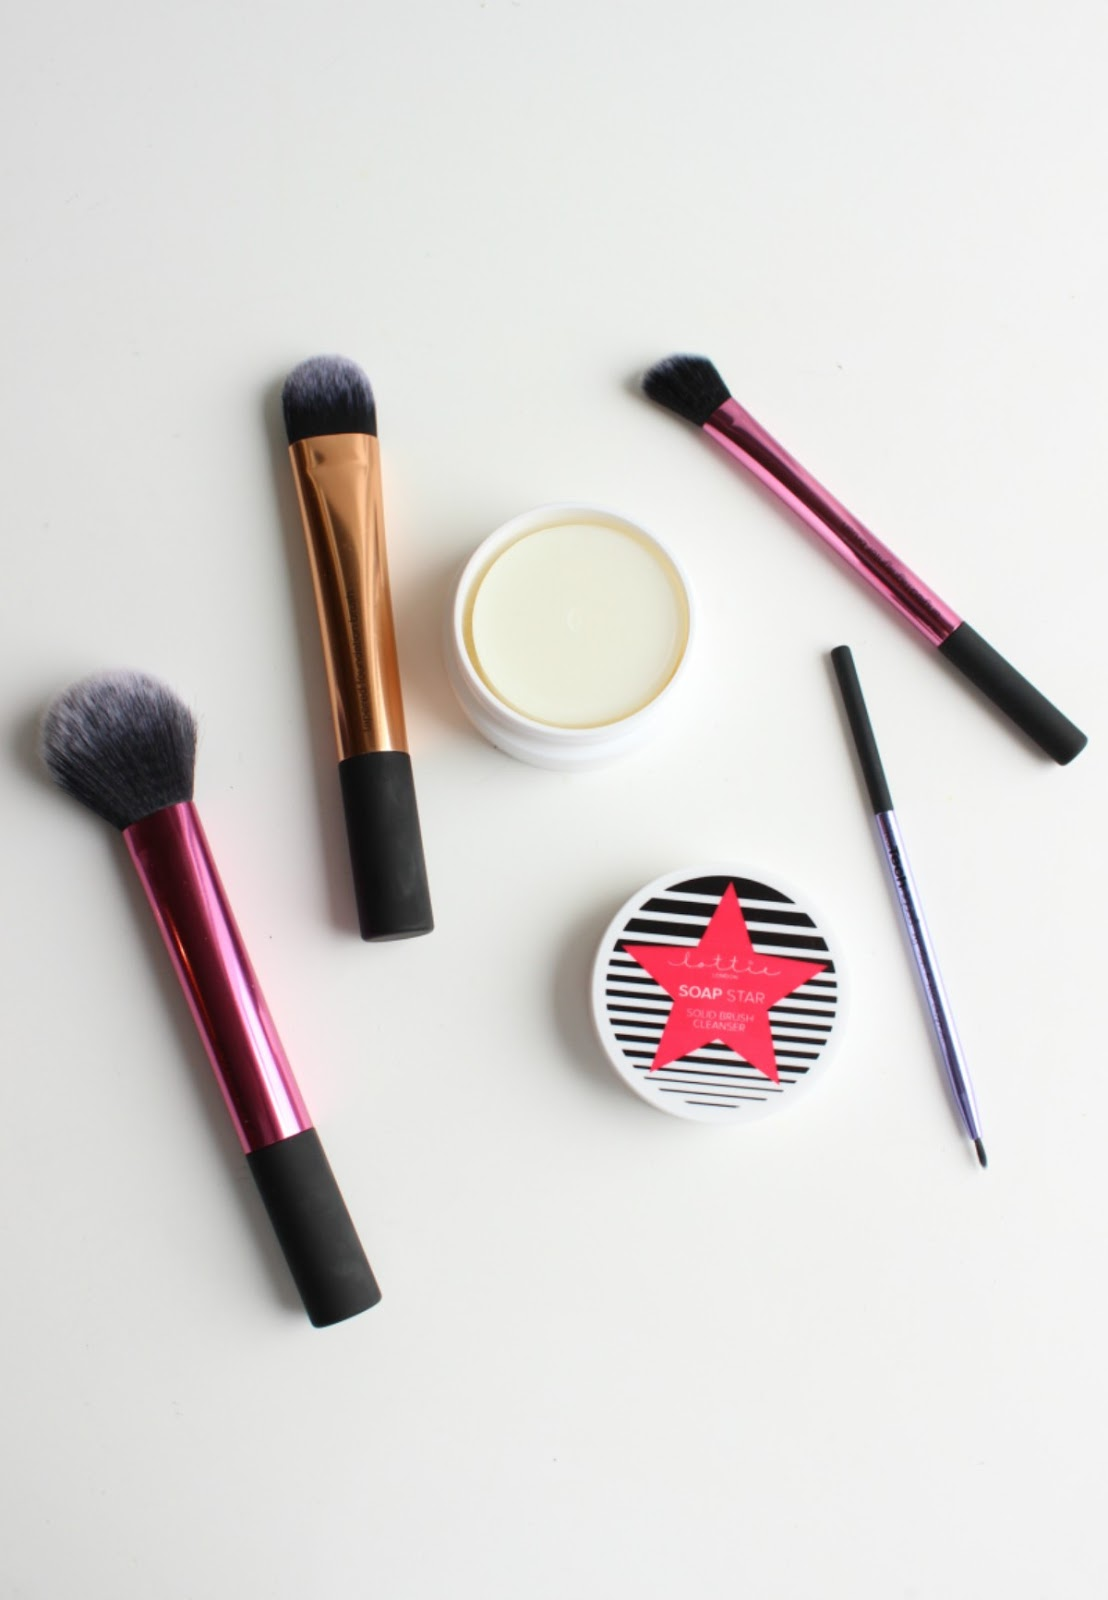 What is Your Favourite Make-Up Brush Ever